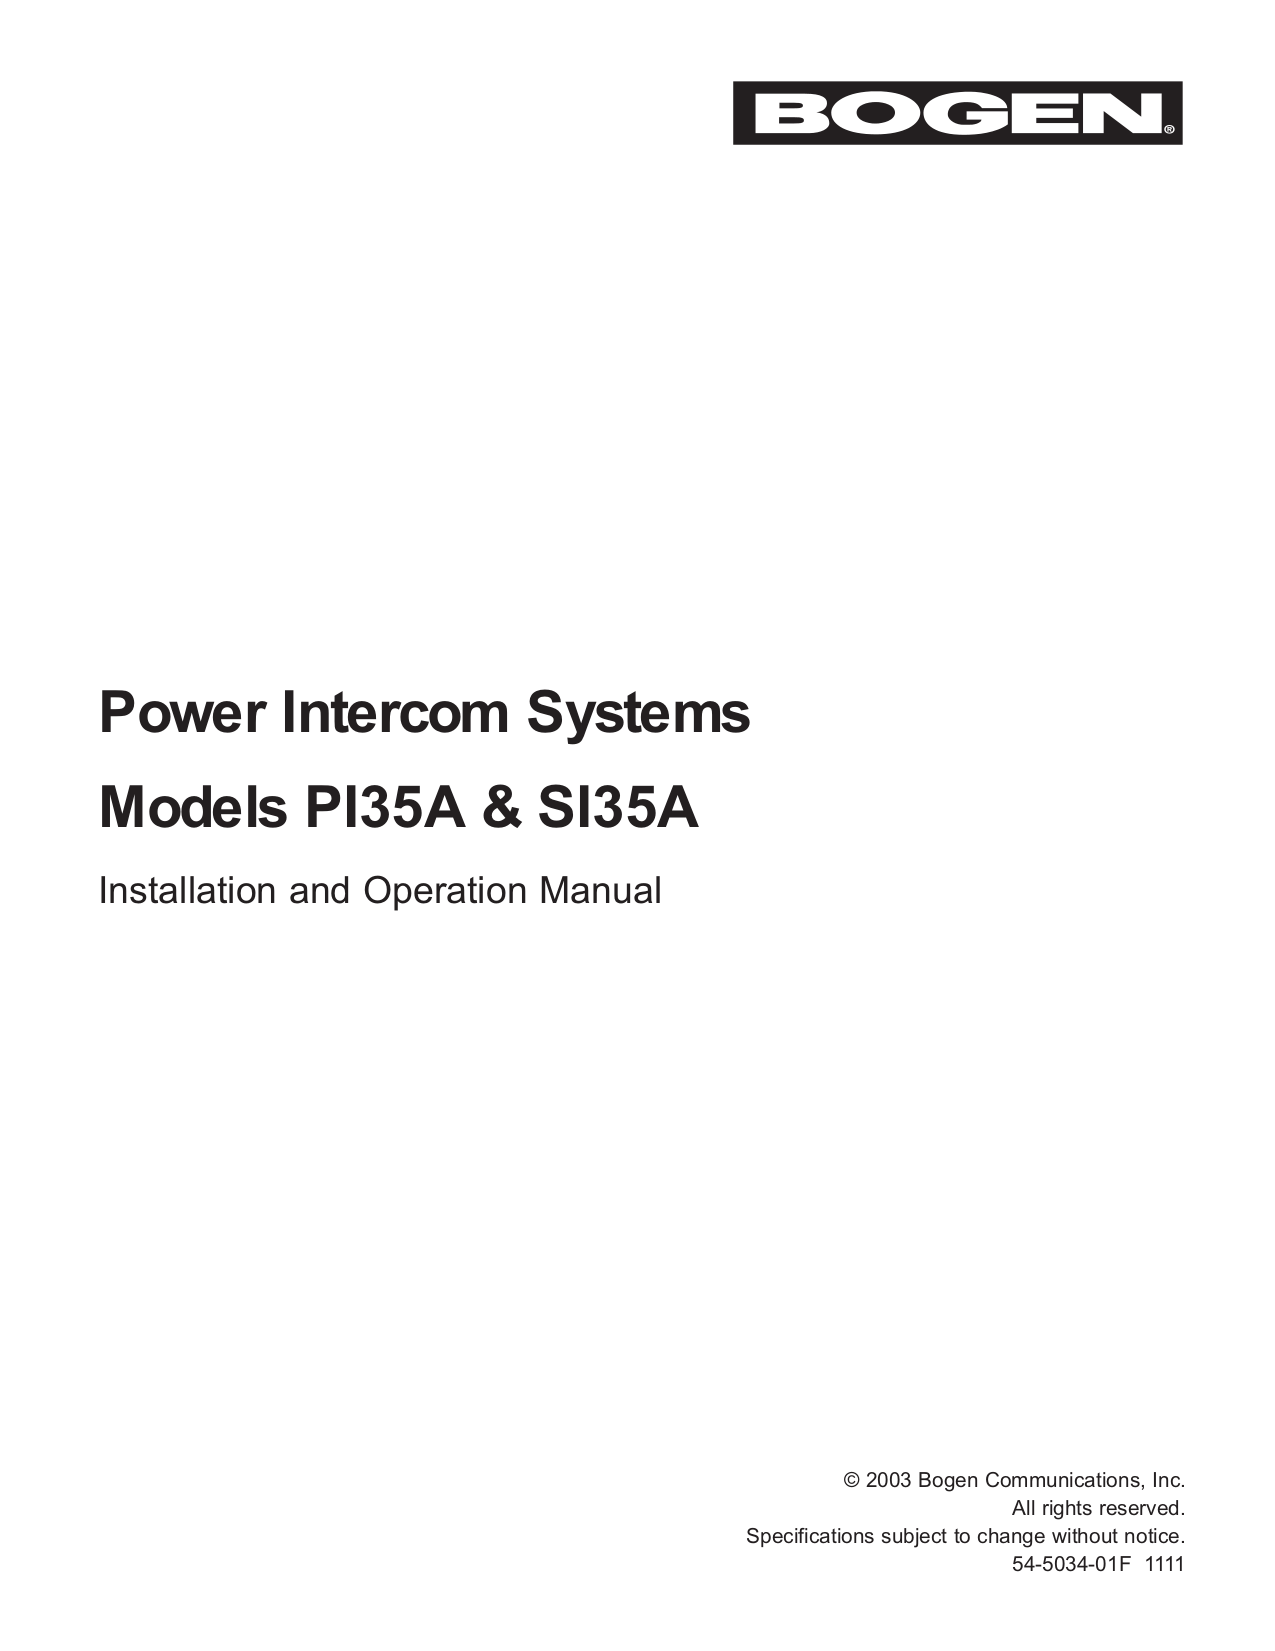 Download free pdf for Telex BP-351 Intercom System Other manual